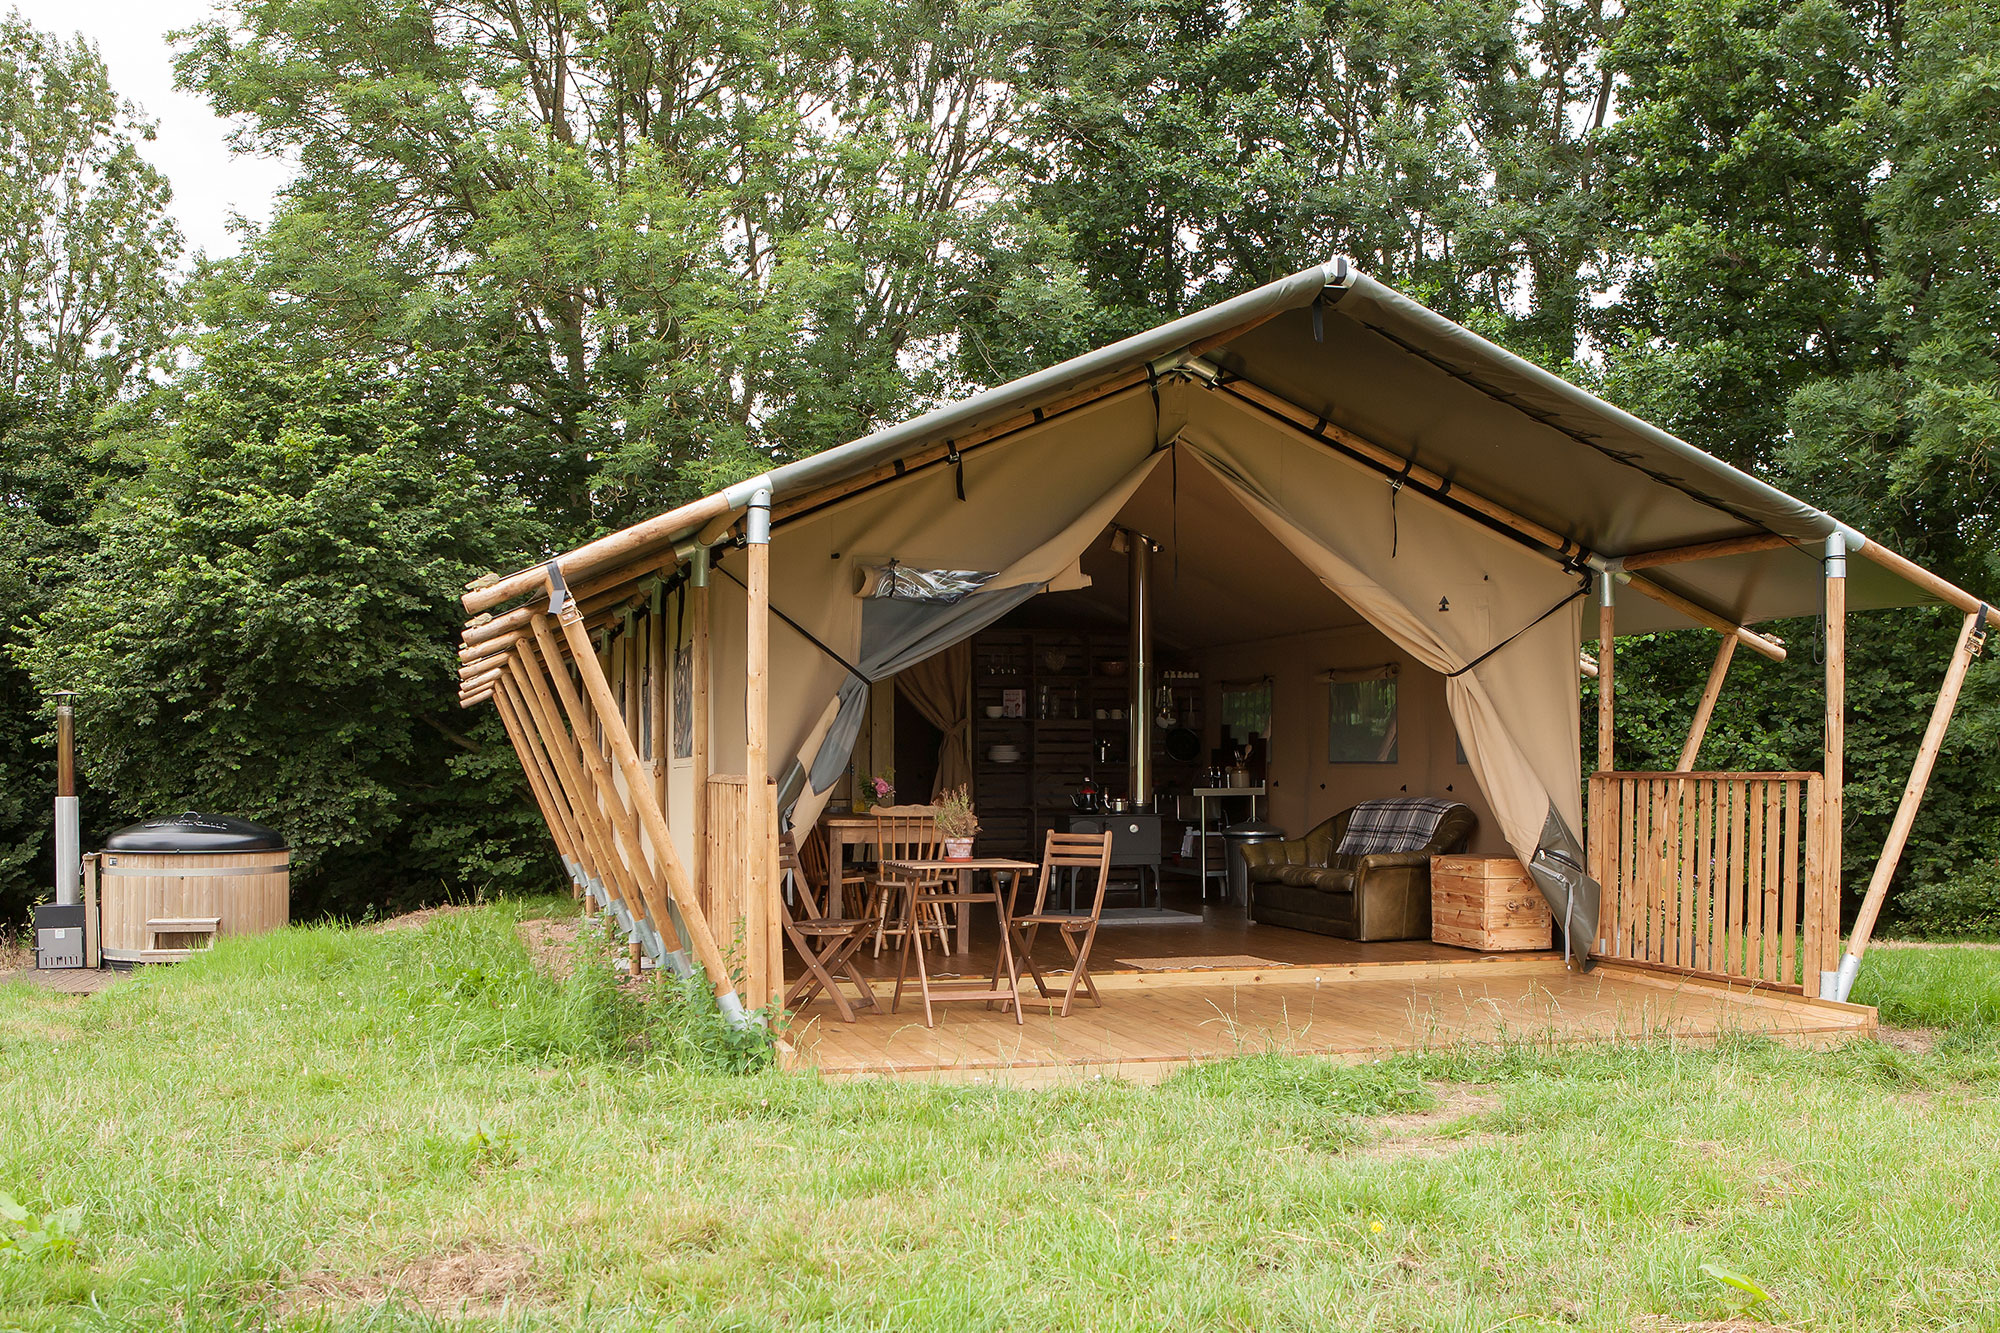 safari tents in Devon